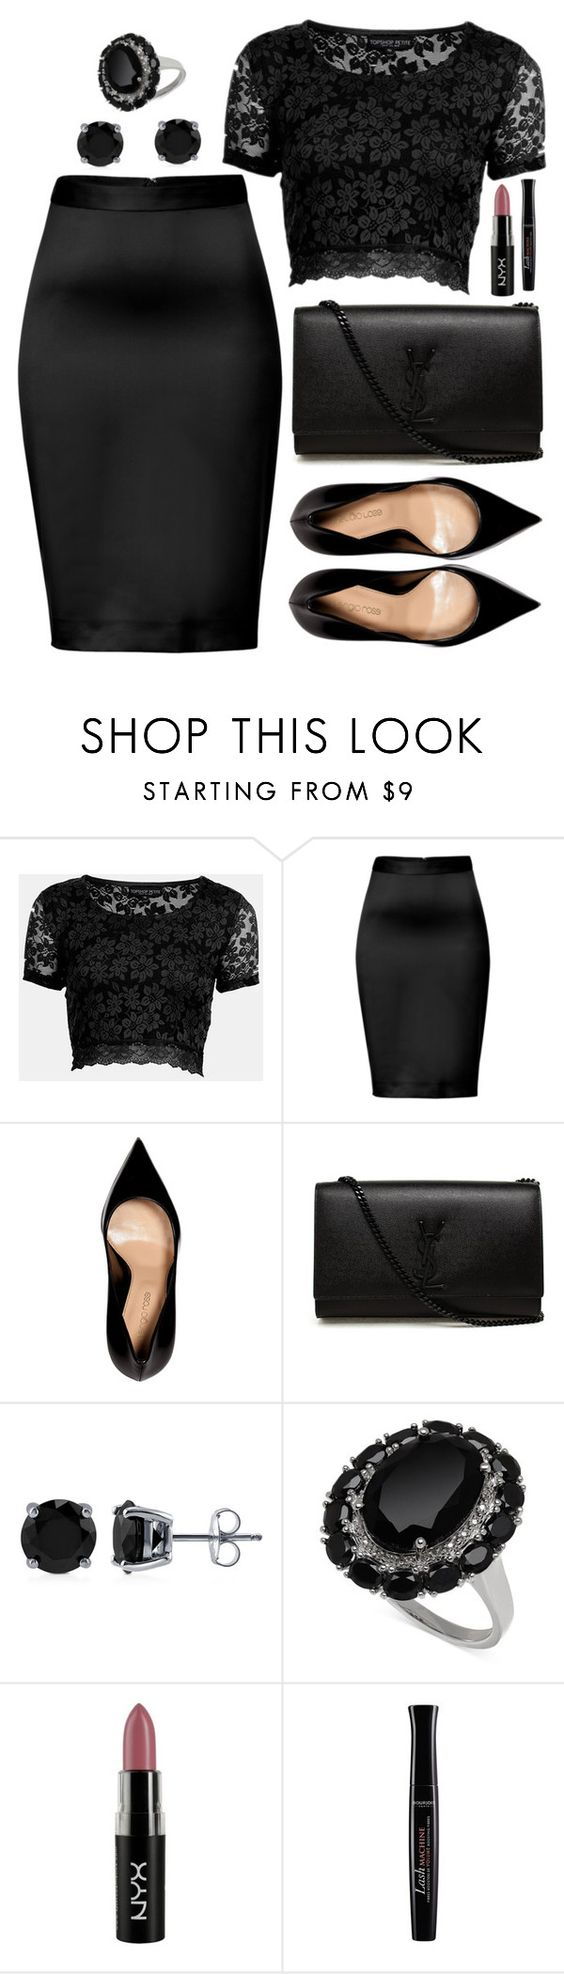 """""""Untitled #3463"""" by natalyasidunova ❤ liked on Polyvore featuring Topshop, Just Cavalli, Sergio Rossi, Yves Saint Laurent, BERRICLE, NYX and Bourjois"""